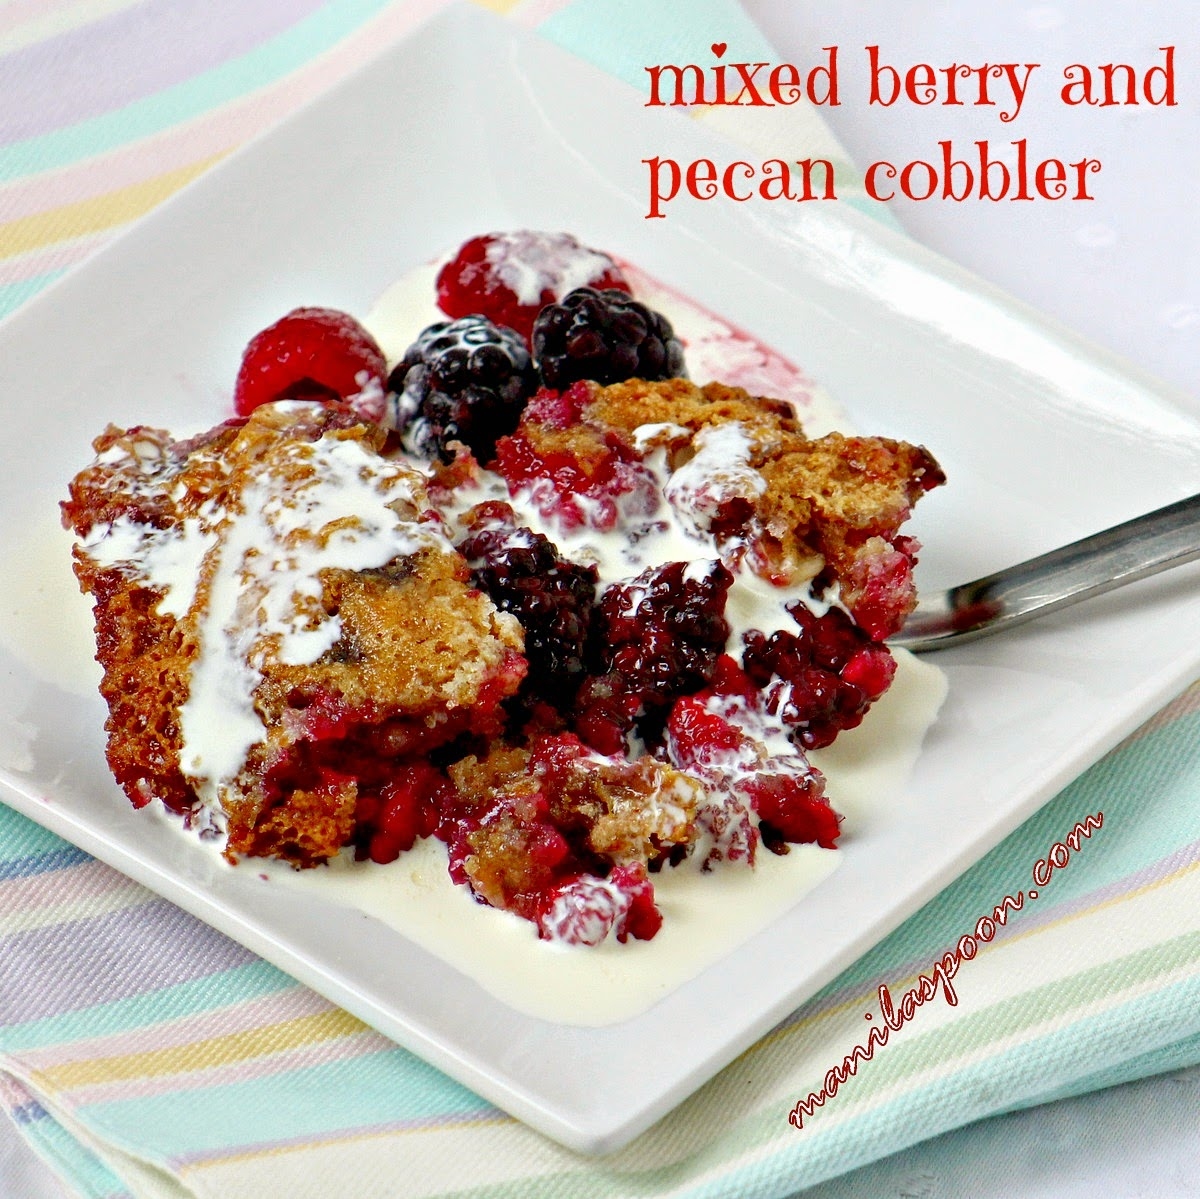 Mixed Berry and Pecan Cobbler